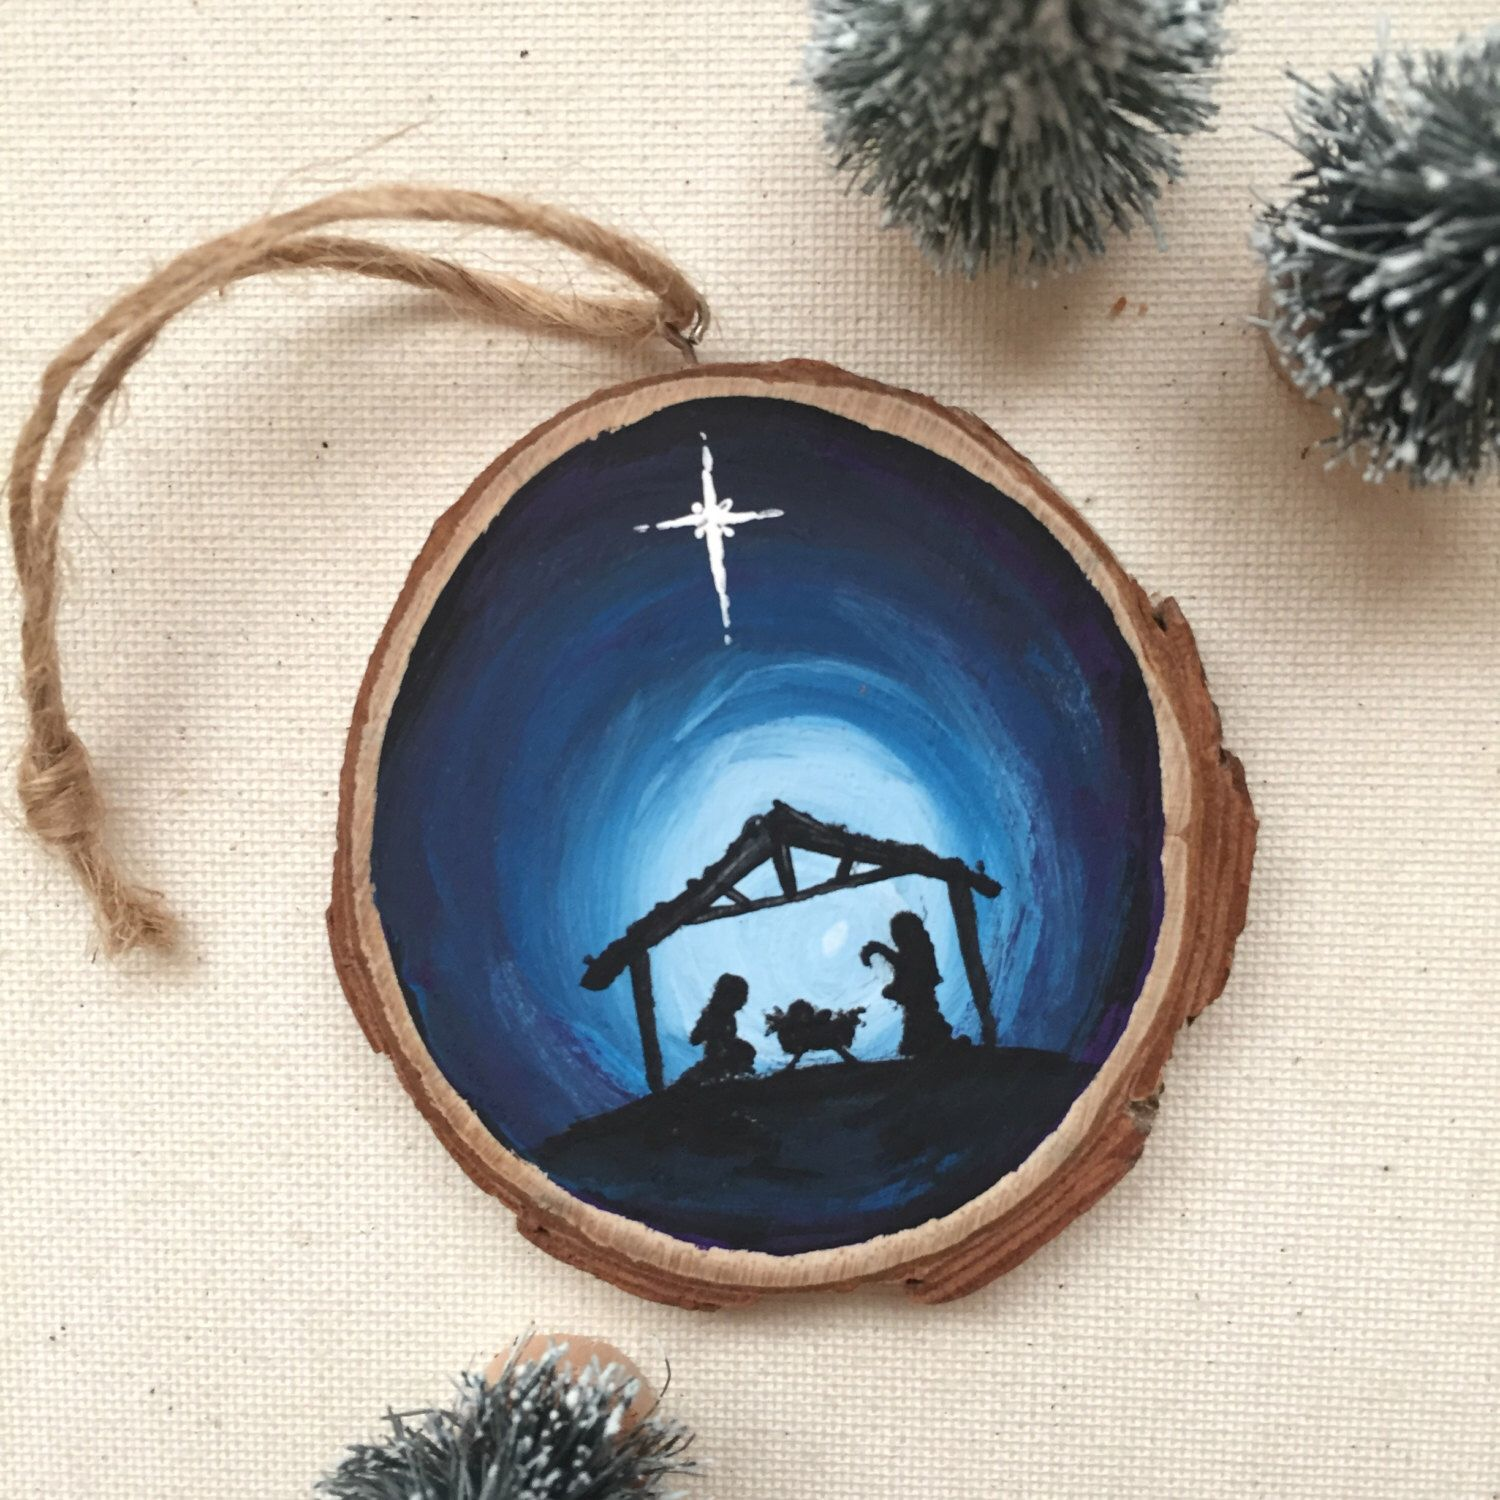 Jesus Ornament Nativity Silhouette Wood Slice Ornament By Breadplease On Etsy H Wood Christmas Ornaments Christmas Ornament Crafts Painted Christmas Ornaments